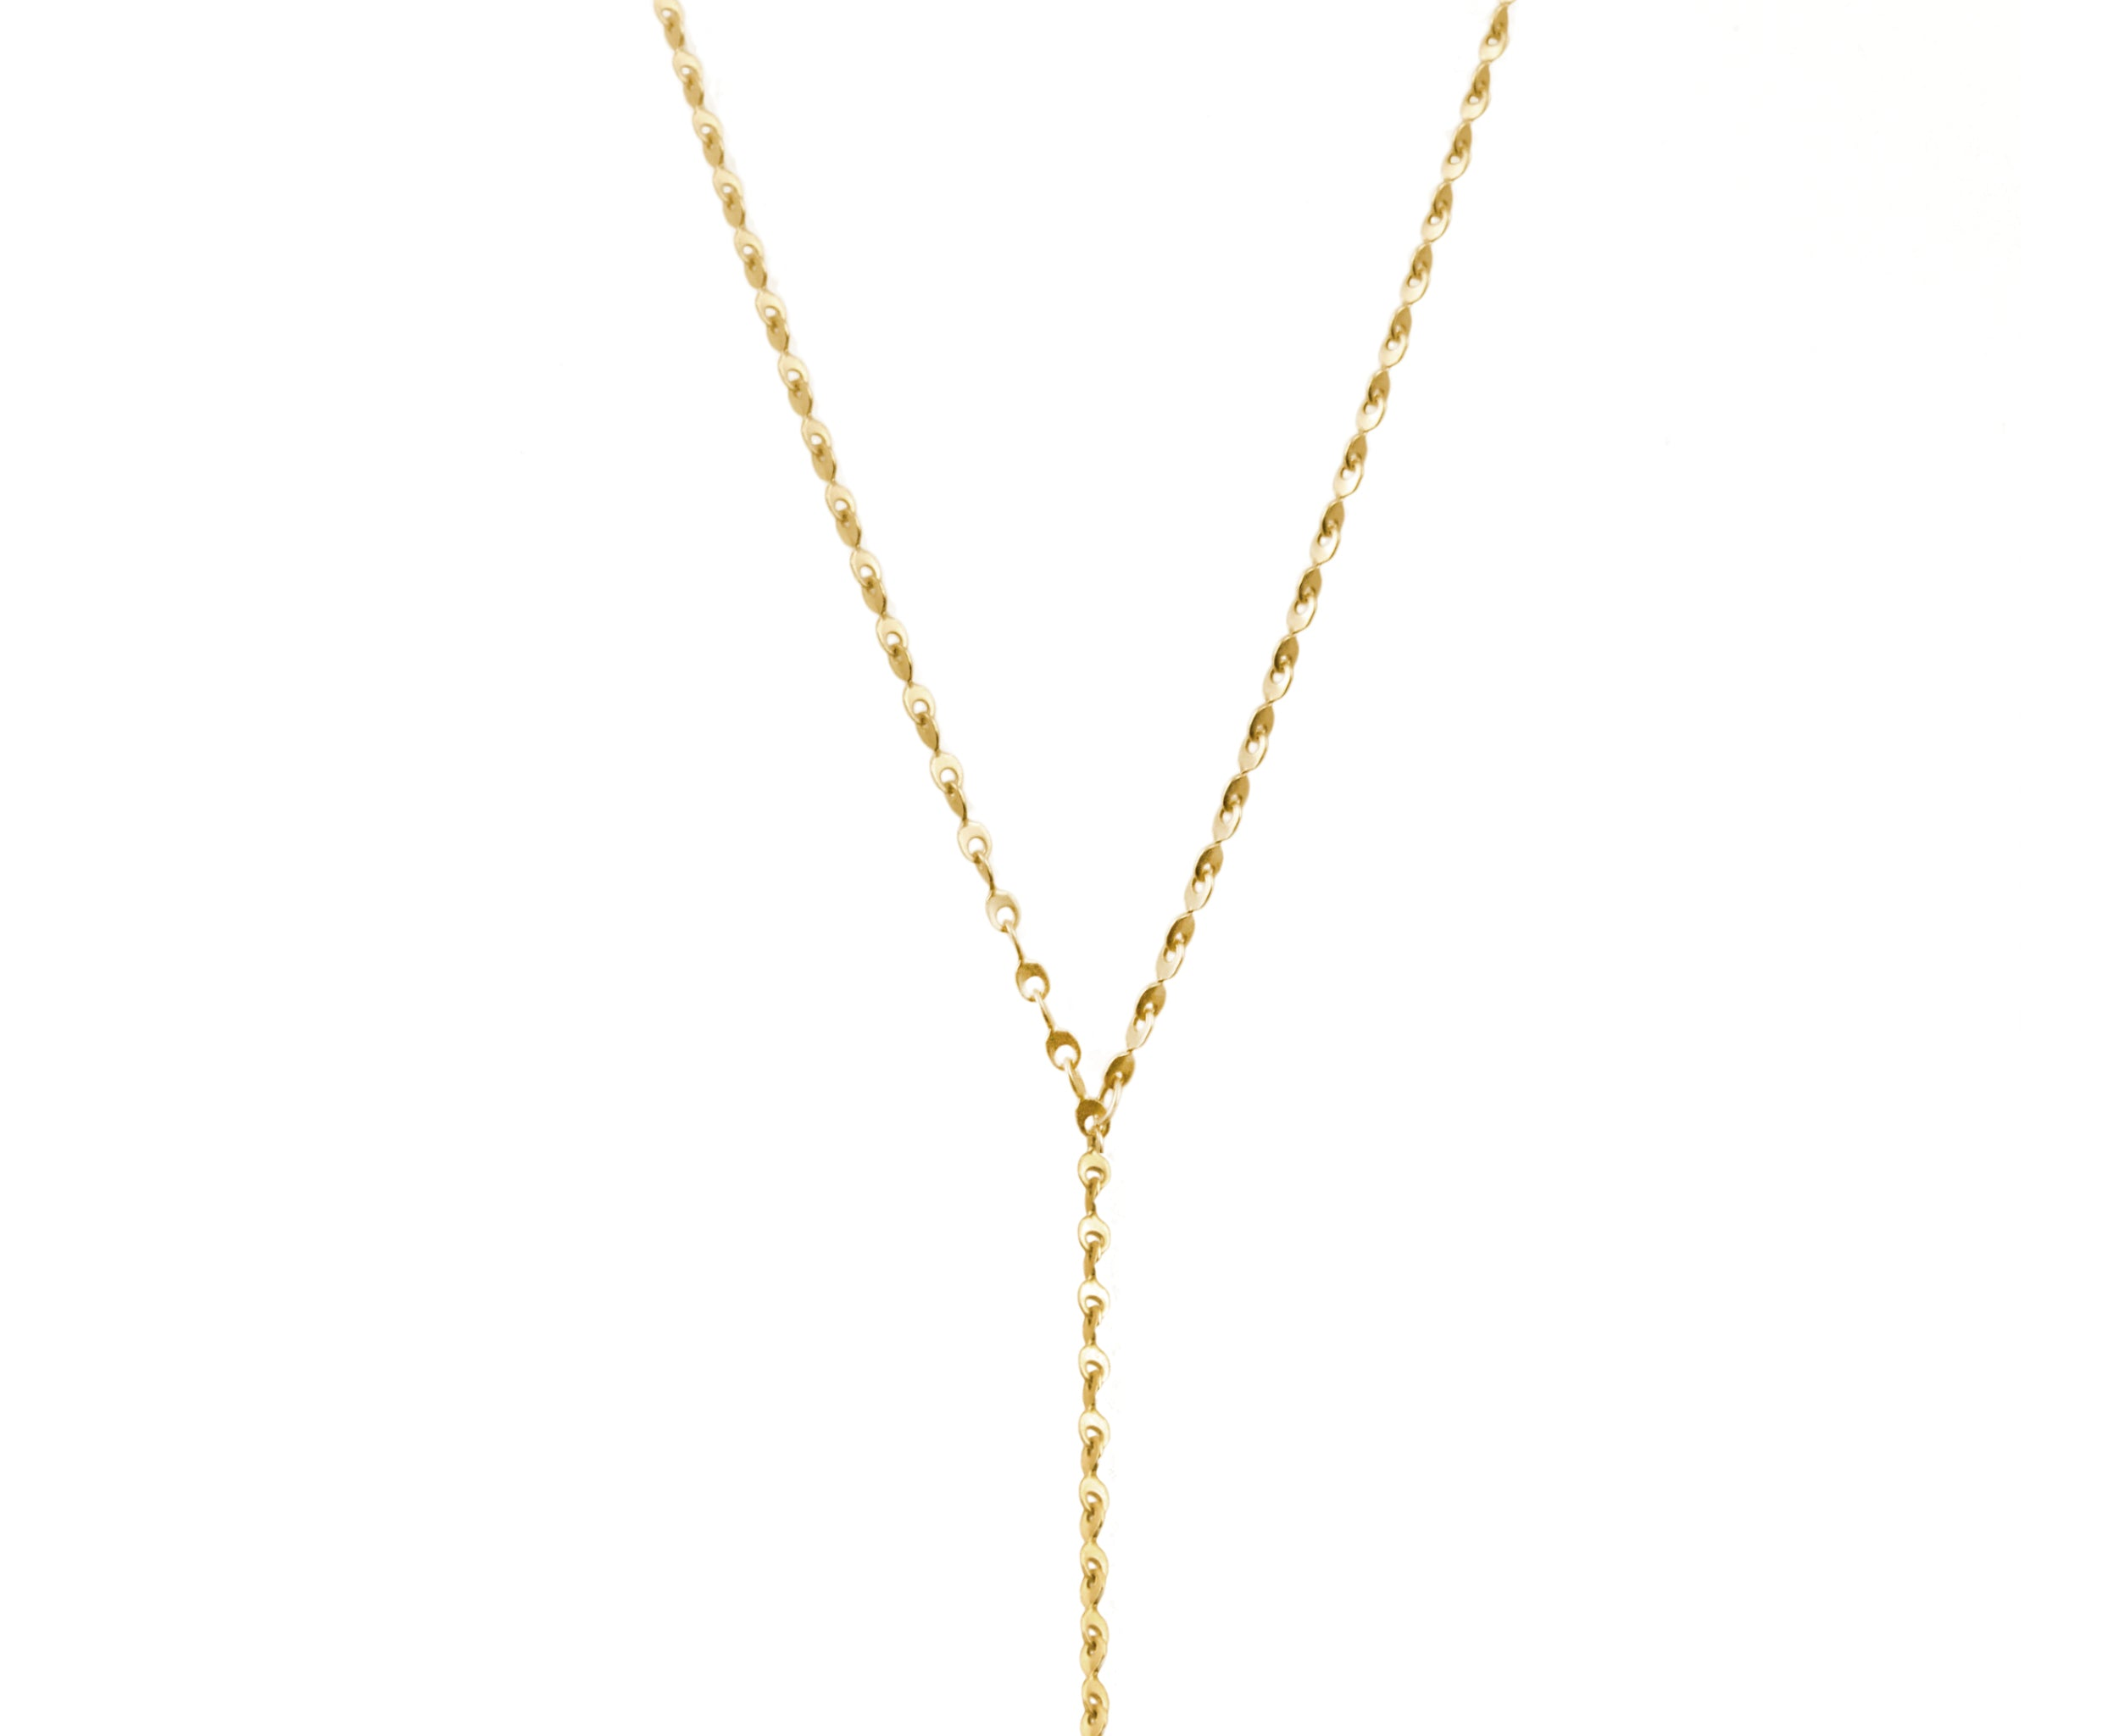 Wood & Gold Eyelet Chain Lariat Necklace